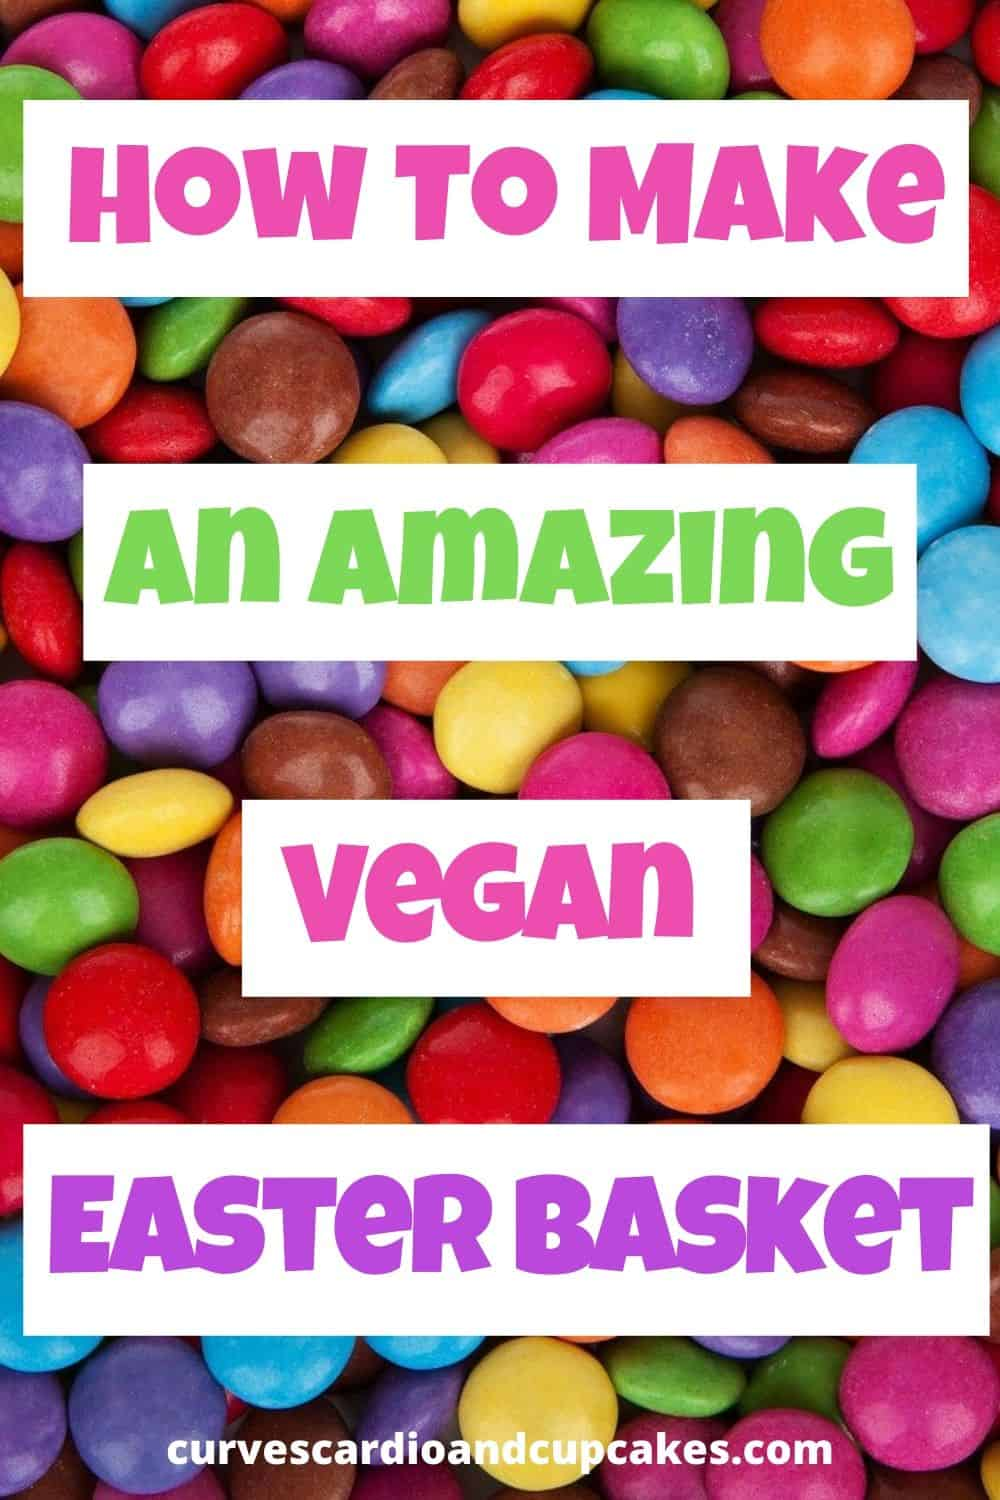 How to make an awesome vegan Easter basket with the best vegan treats and non-food items. Vegan Easter traditions can be fun for the whole family with these cute, creative plant based homemade DIY vegan Easter basket ideas. Where to buy a vegan Easter basket. Candy, chocolate bunny, food treats, and creative non food ideas for girls, boys, men, and women. #veganeaster #veganeasterbasket